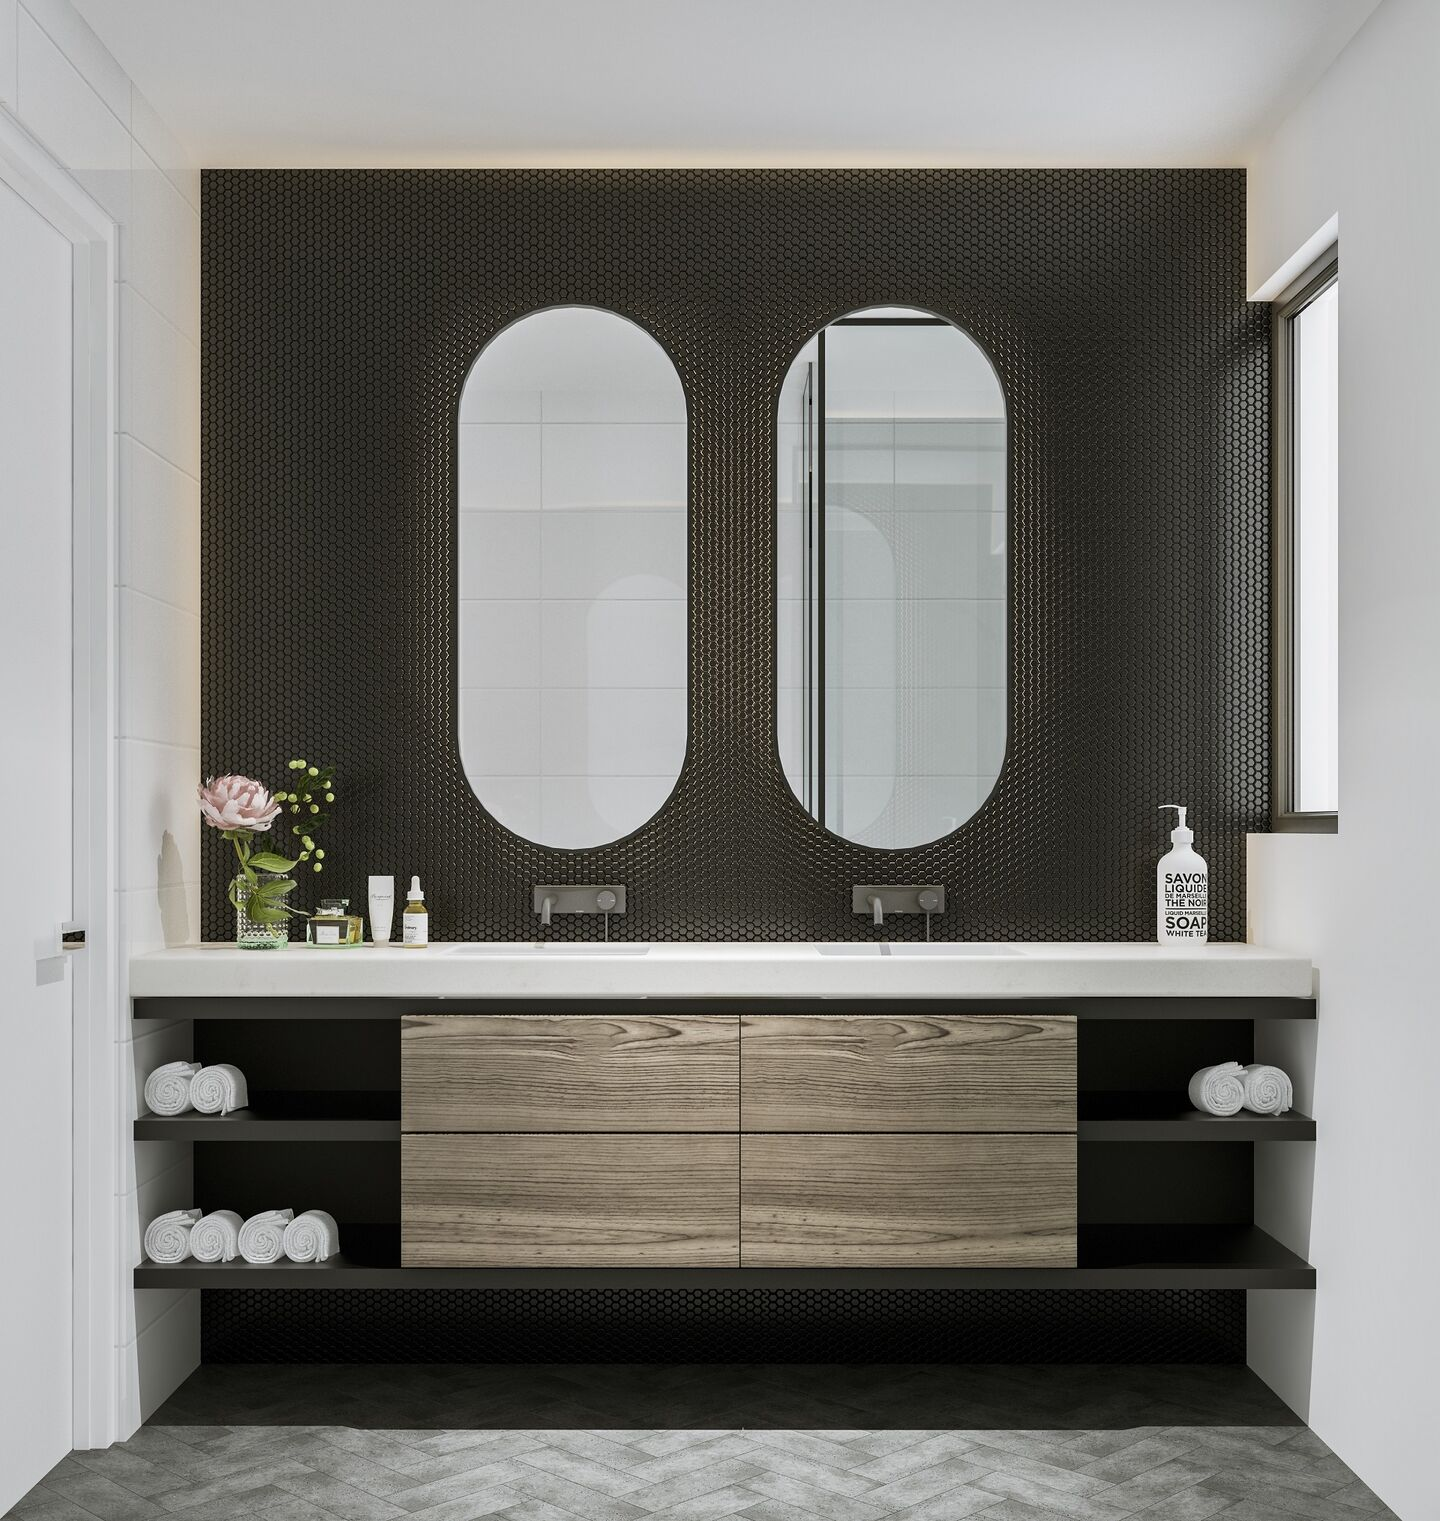 The Heggaton Ensuite Dark Scheme